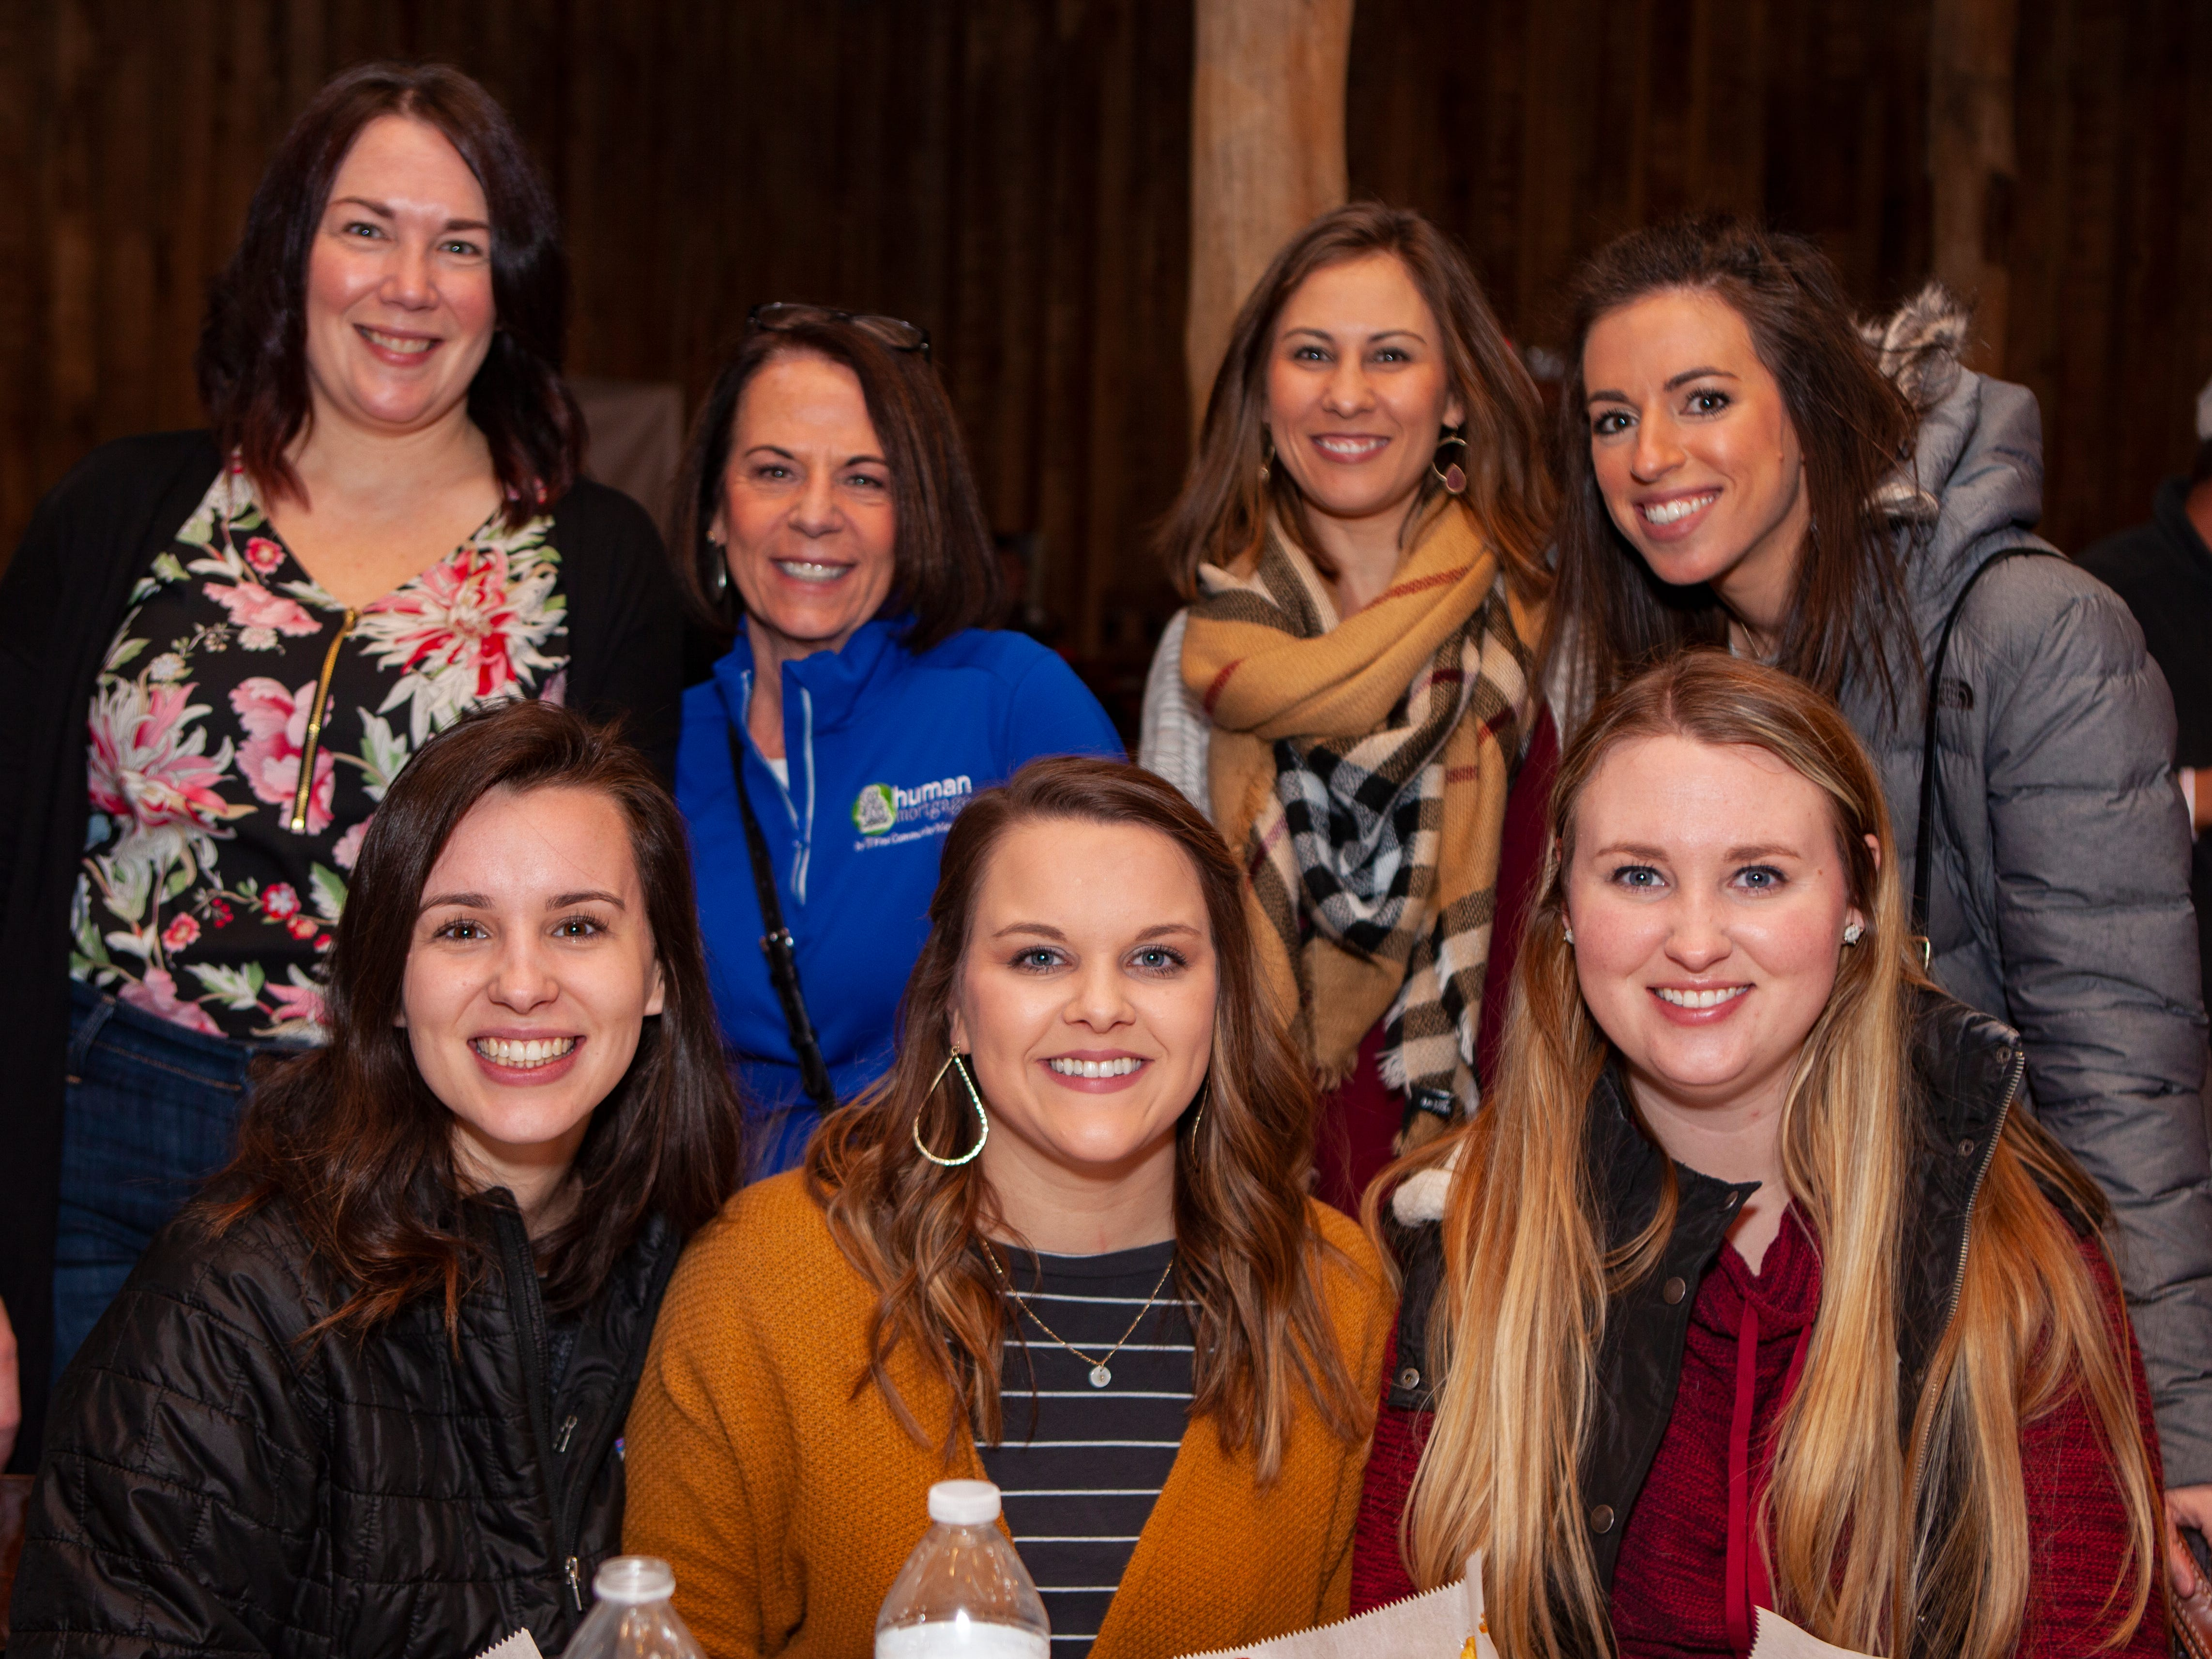 The third annual Battle of the Brews benefiting Kymari House was held Saturday, Feb. 9, 2019 at The Grove at Williamson Place in Murfreesboro.